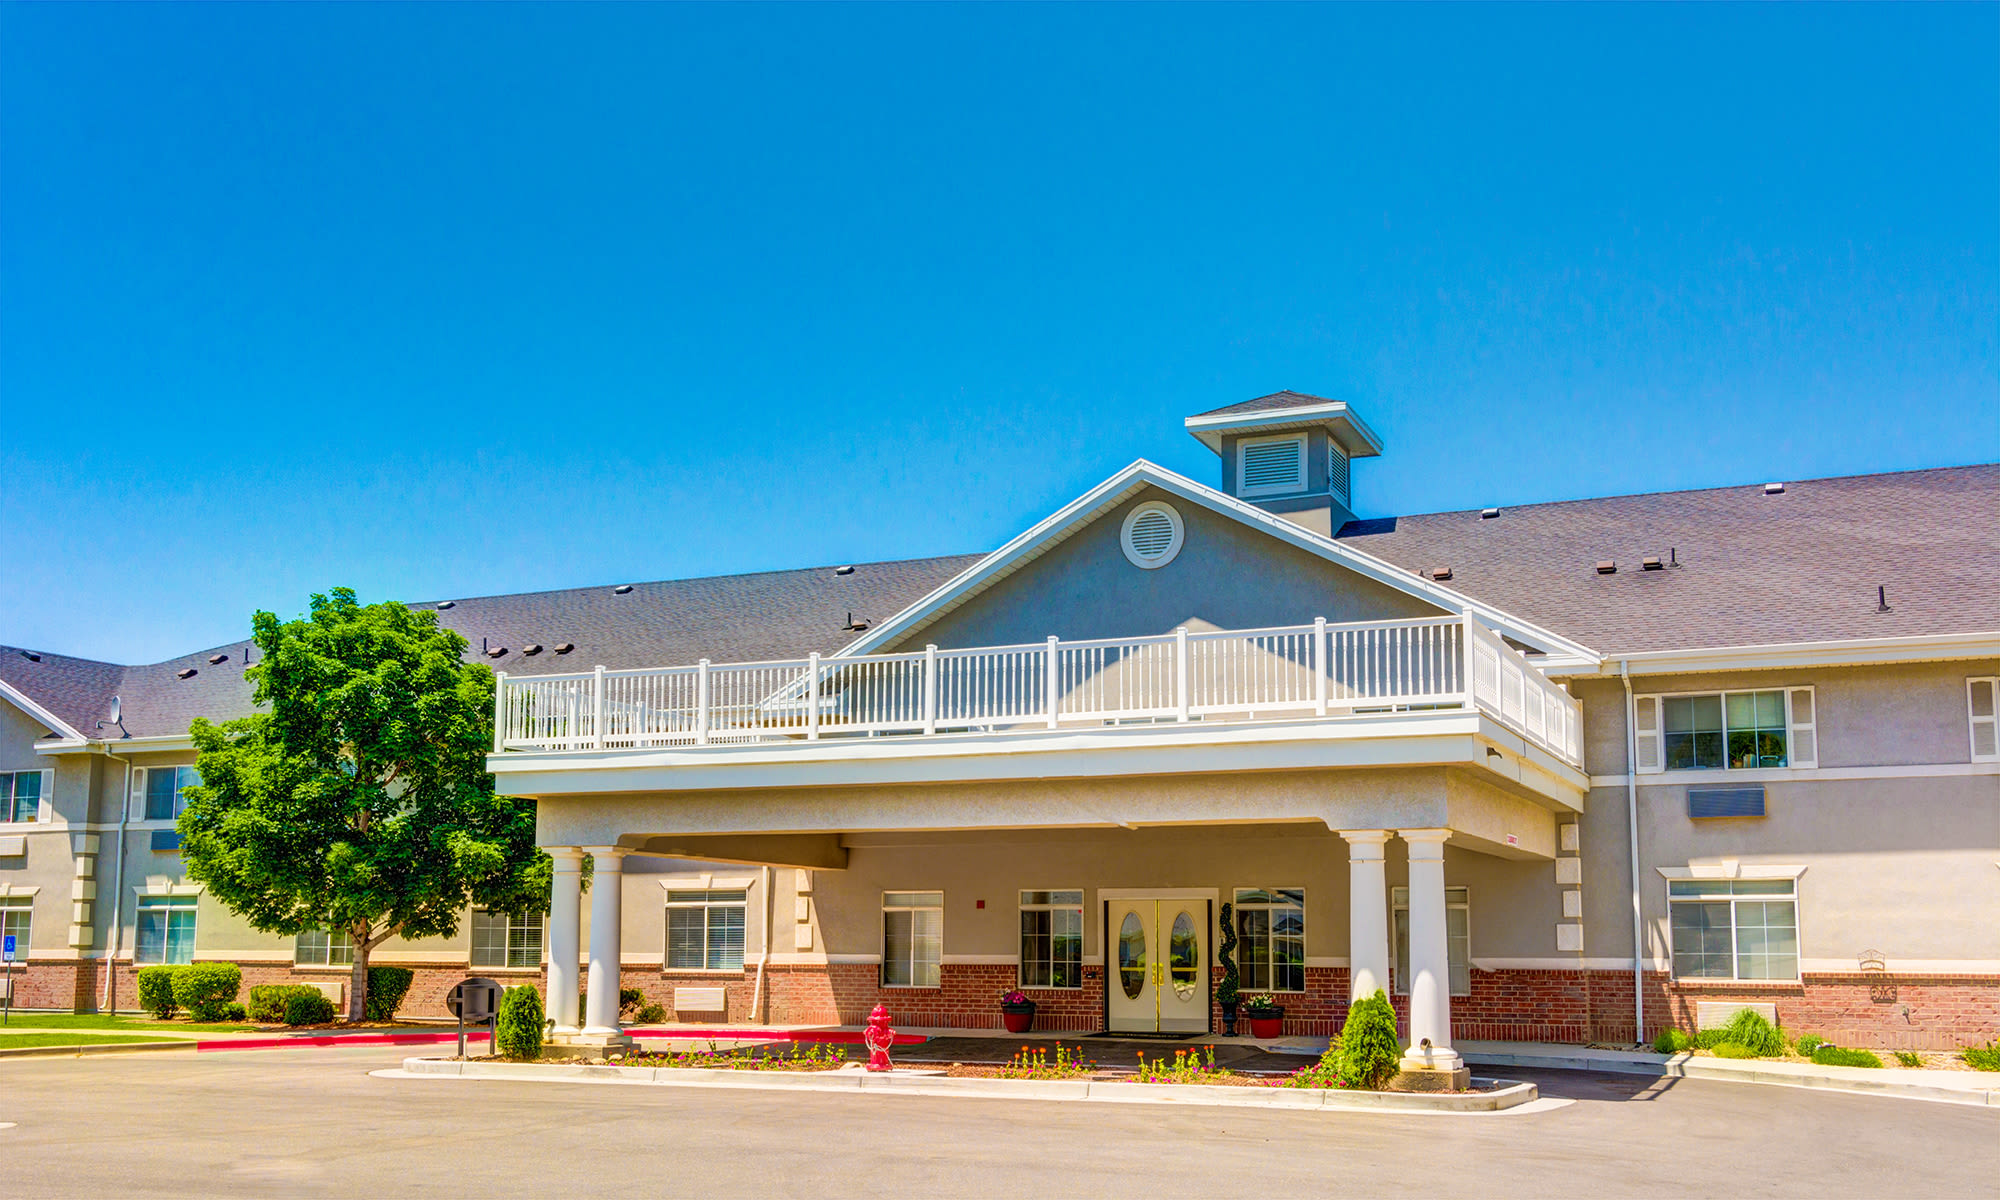 The Wentworth at Draper senior living